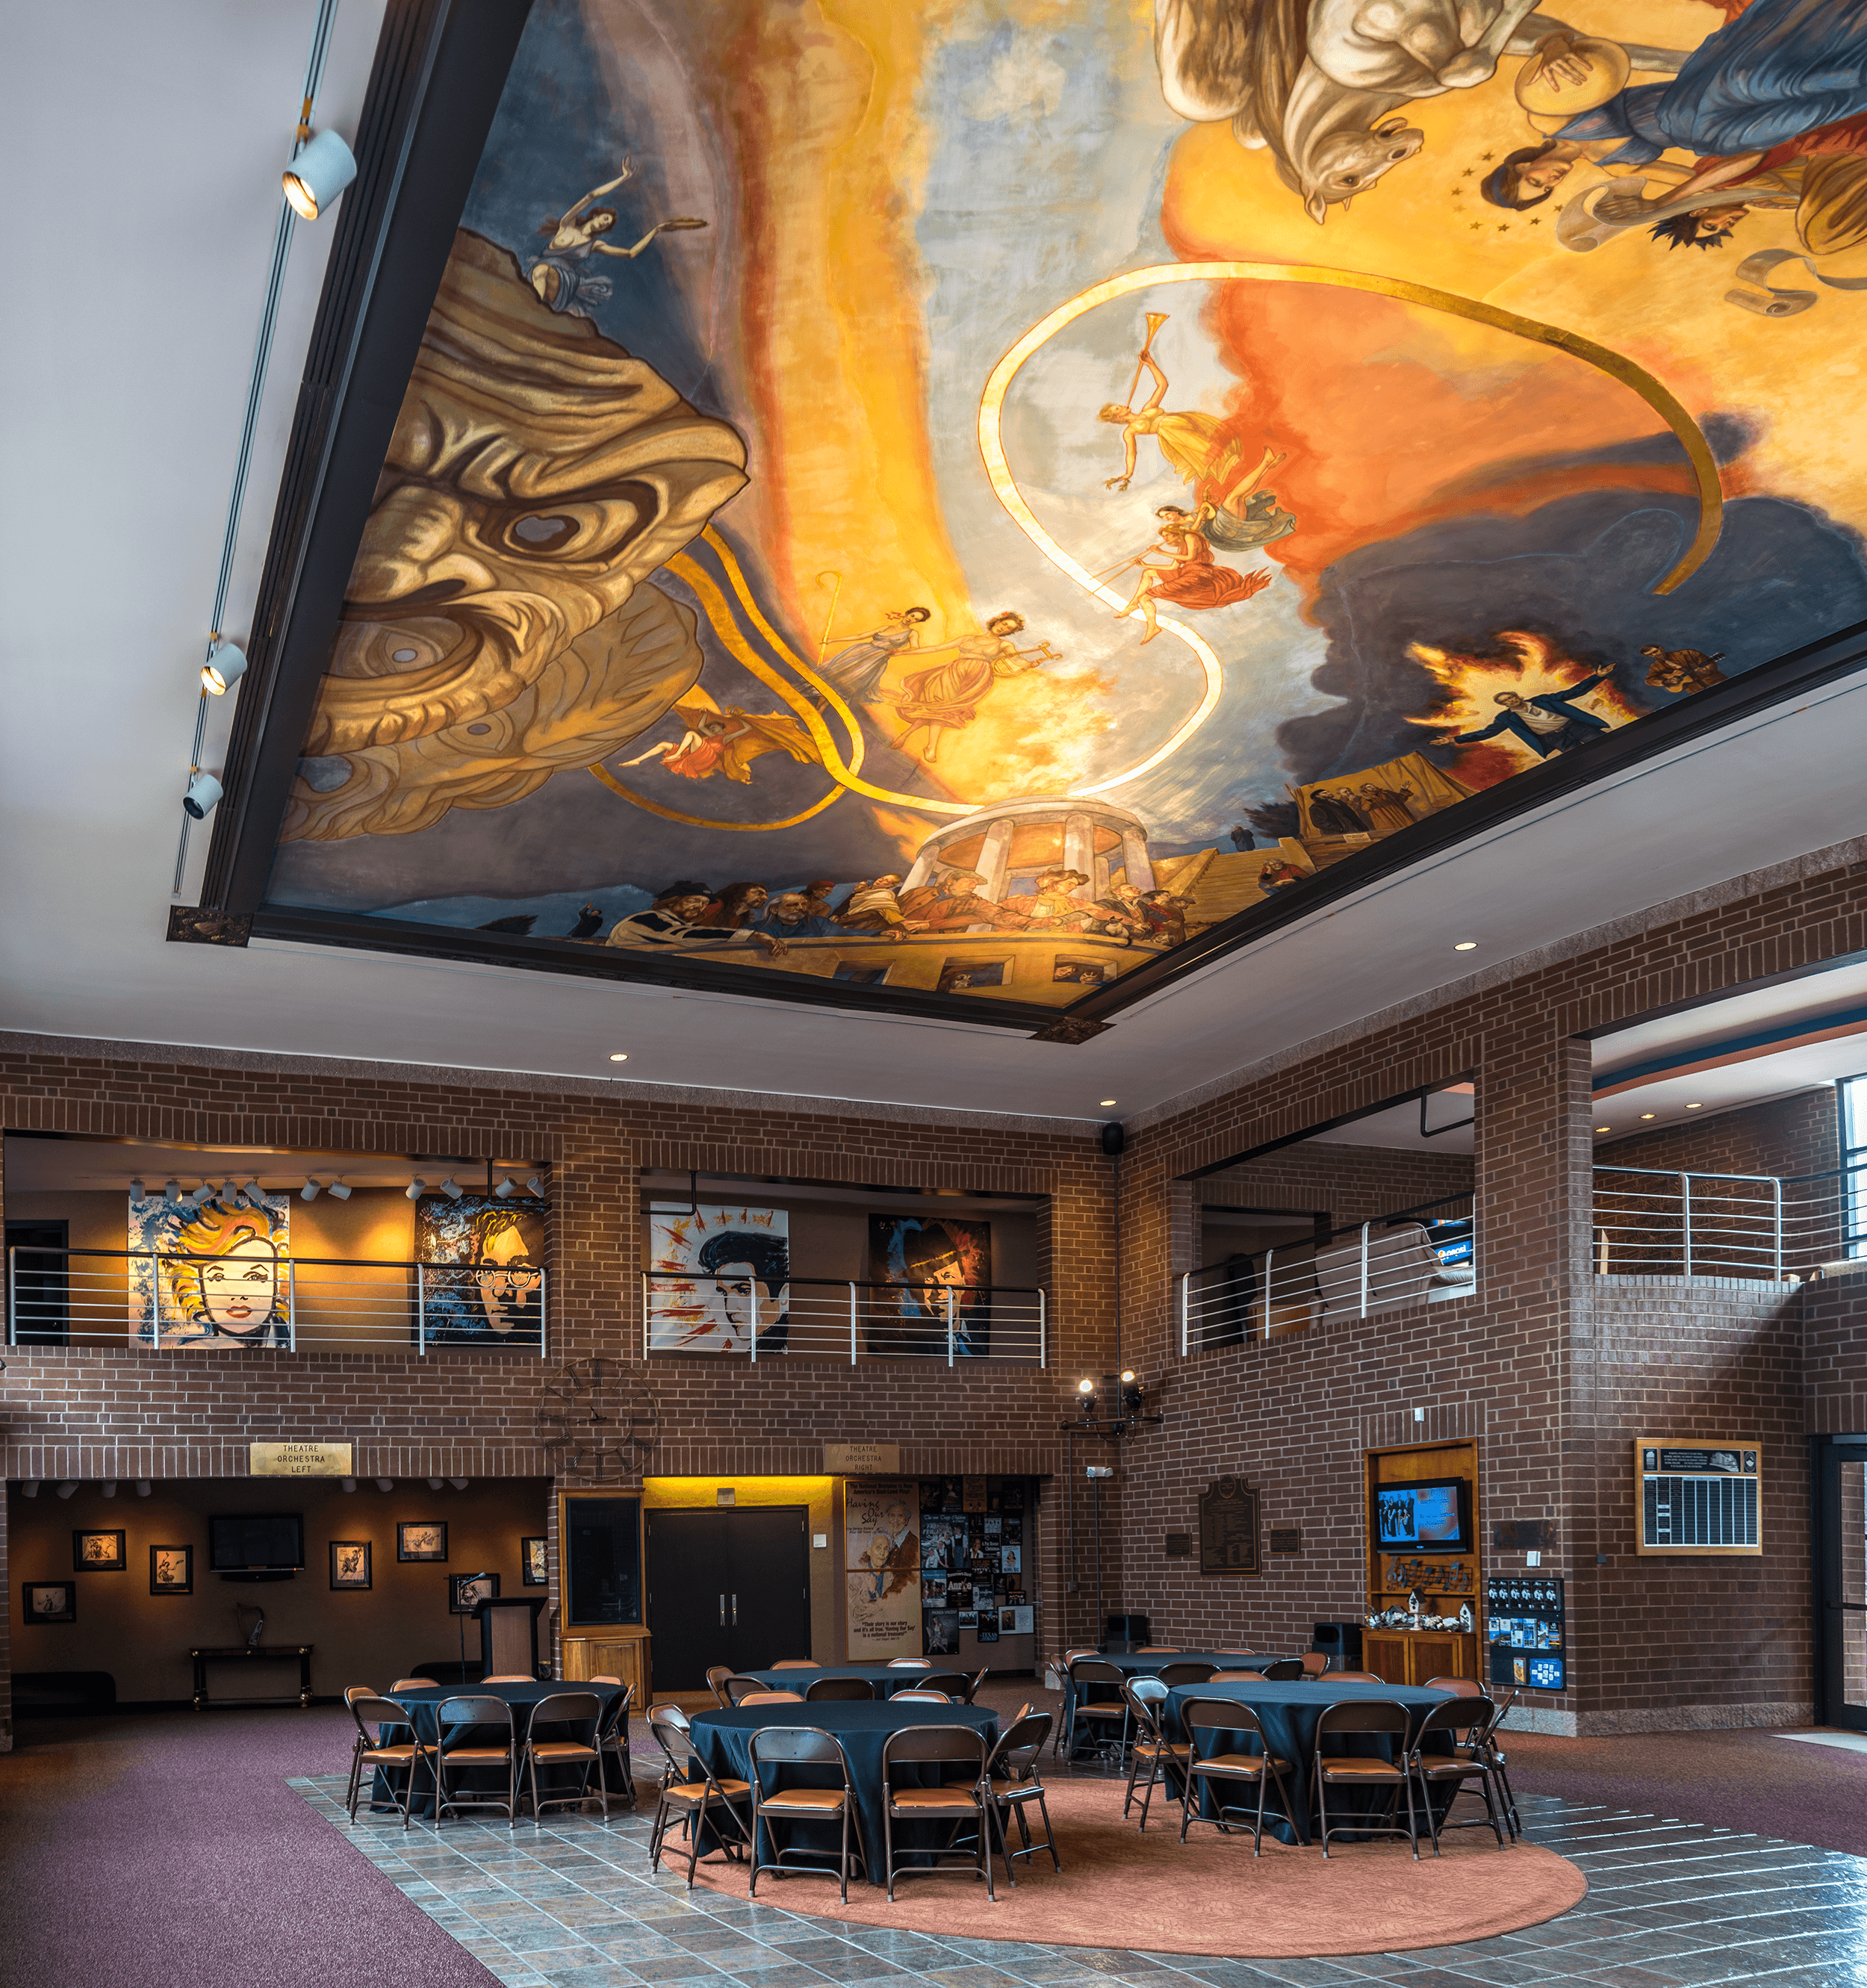 The atrium of the  Municipal Auditorium  also features an impressive ceiling fresco, titled  Sacred Dance & the Muses , by world-renowned fresco artist Ben Long. The fresco is approximately 24 feet wide, and 33 feet long (7 meters by 10 meters) with a 14-inch (36 centimeters) rise from the sides to its center. It took Ben Long and his team of three master artists and six apprentices three months to complete.